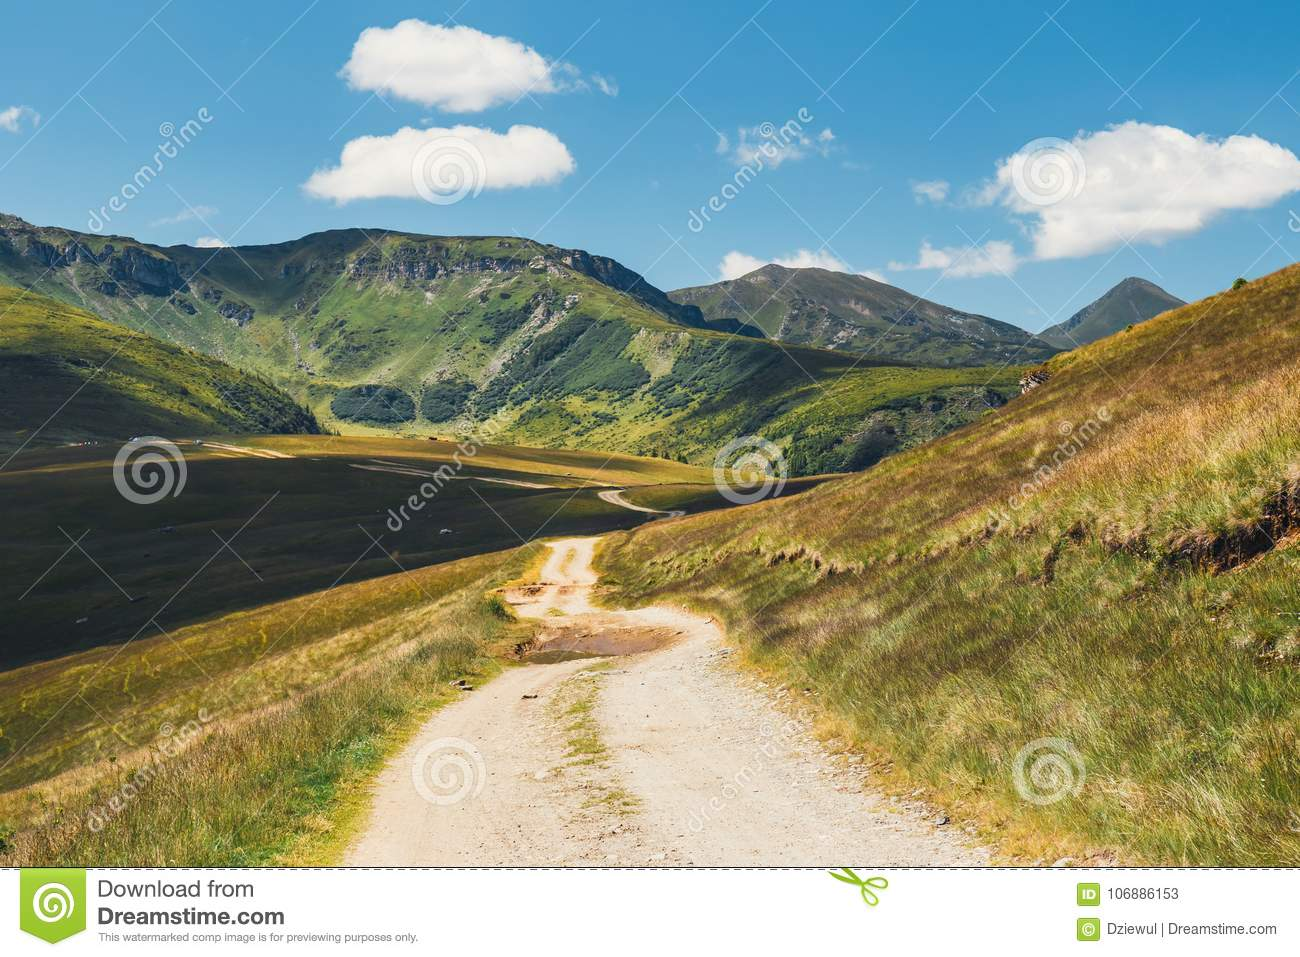 Landscapes of Rodna Mountains in eastern carpathians, romania